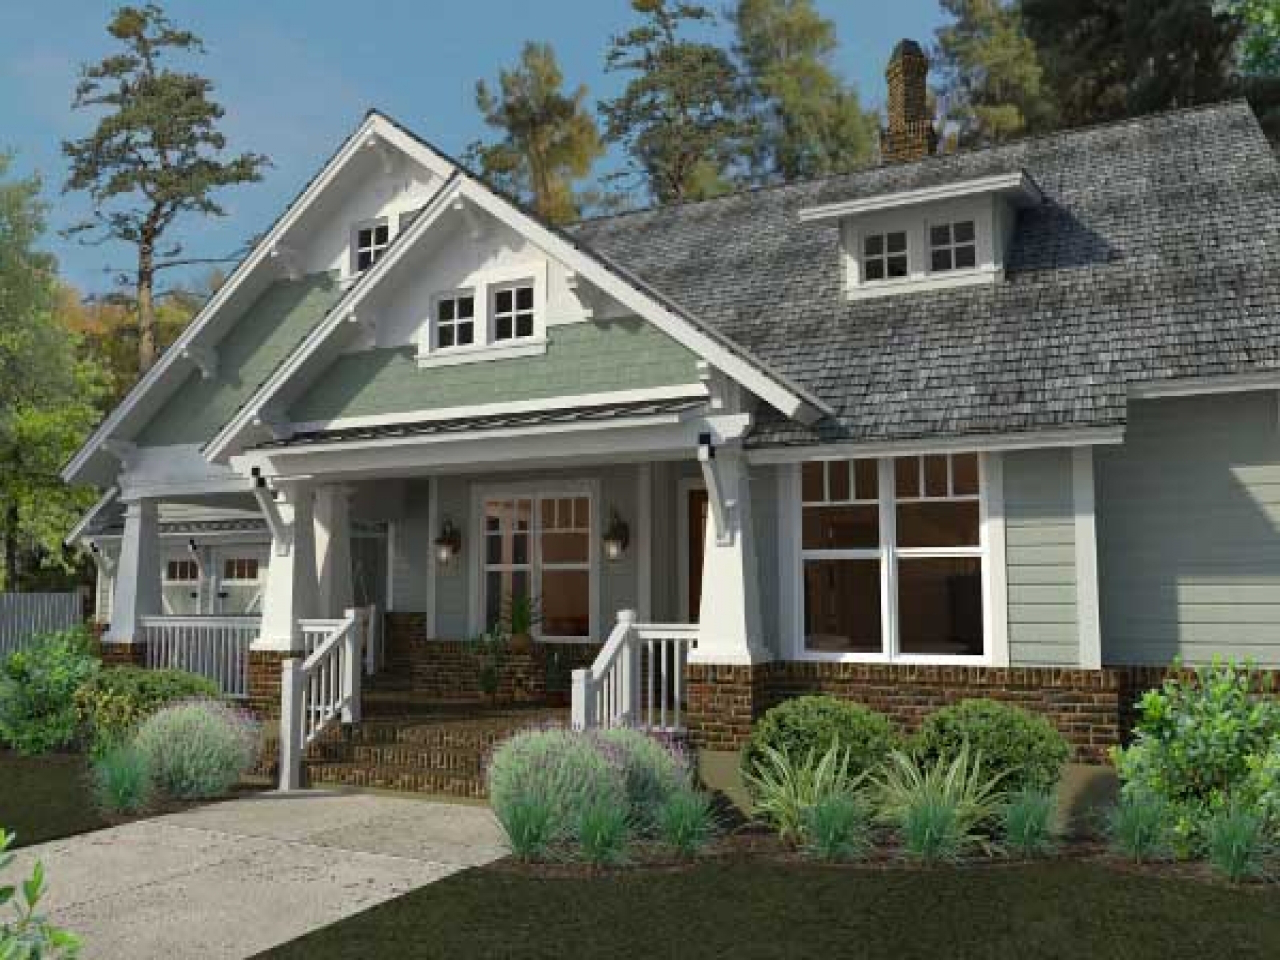 Elite Baby Nursery. 1 Story House: Story Bungalow House Plans With Porches inside Fresh Bungalow Meaning